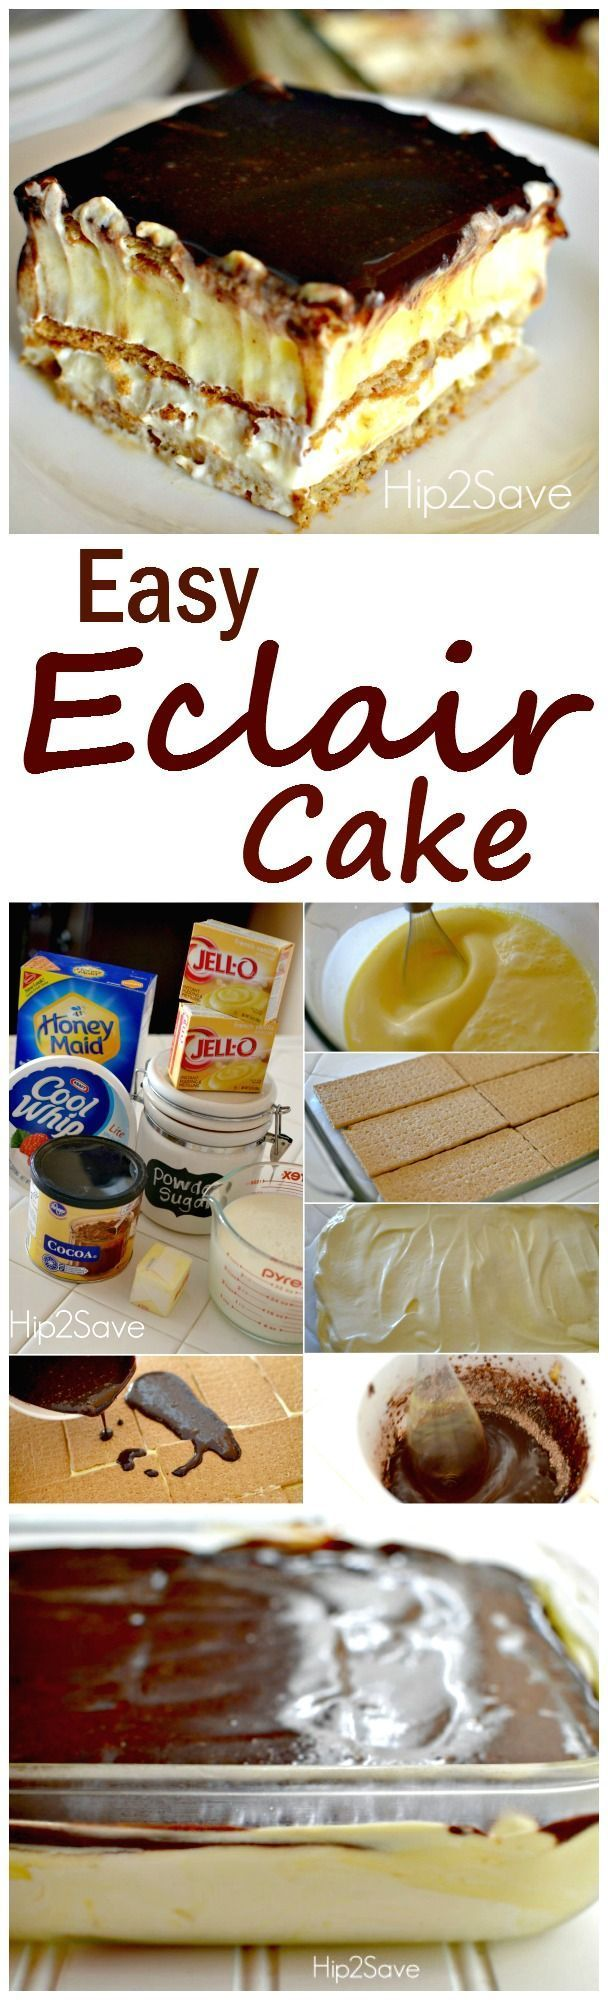 A wonderful and easy eclair dessert cake recipe. Enjoy this will your family after a wonderful meal, or make it to impress your